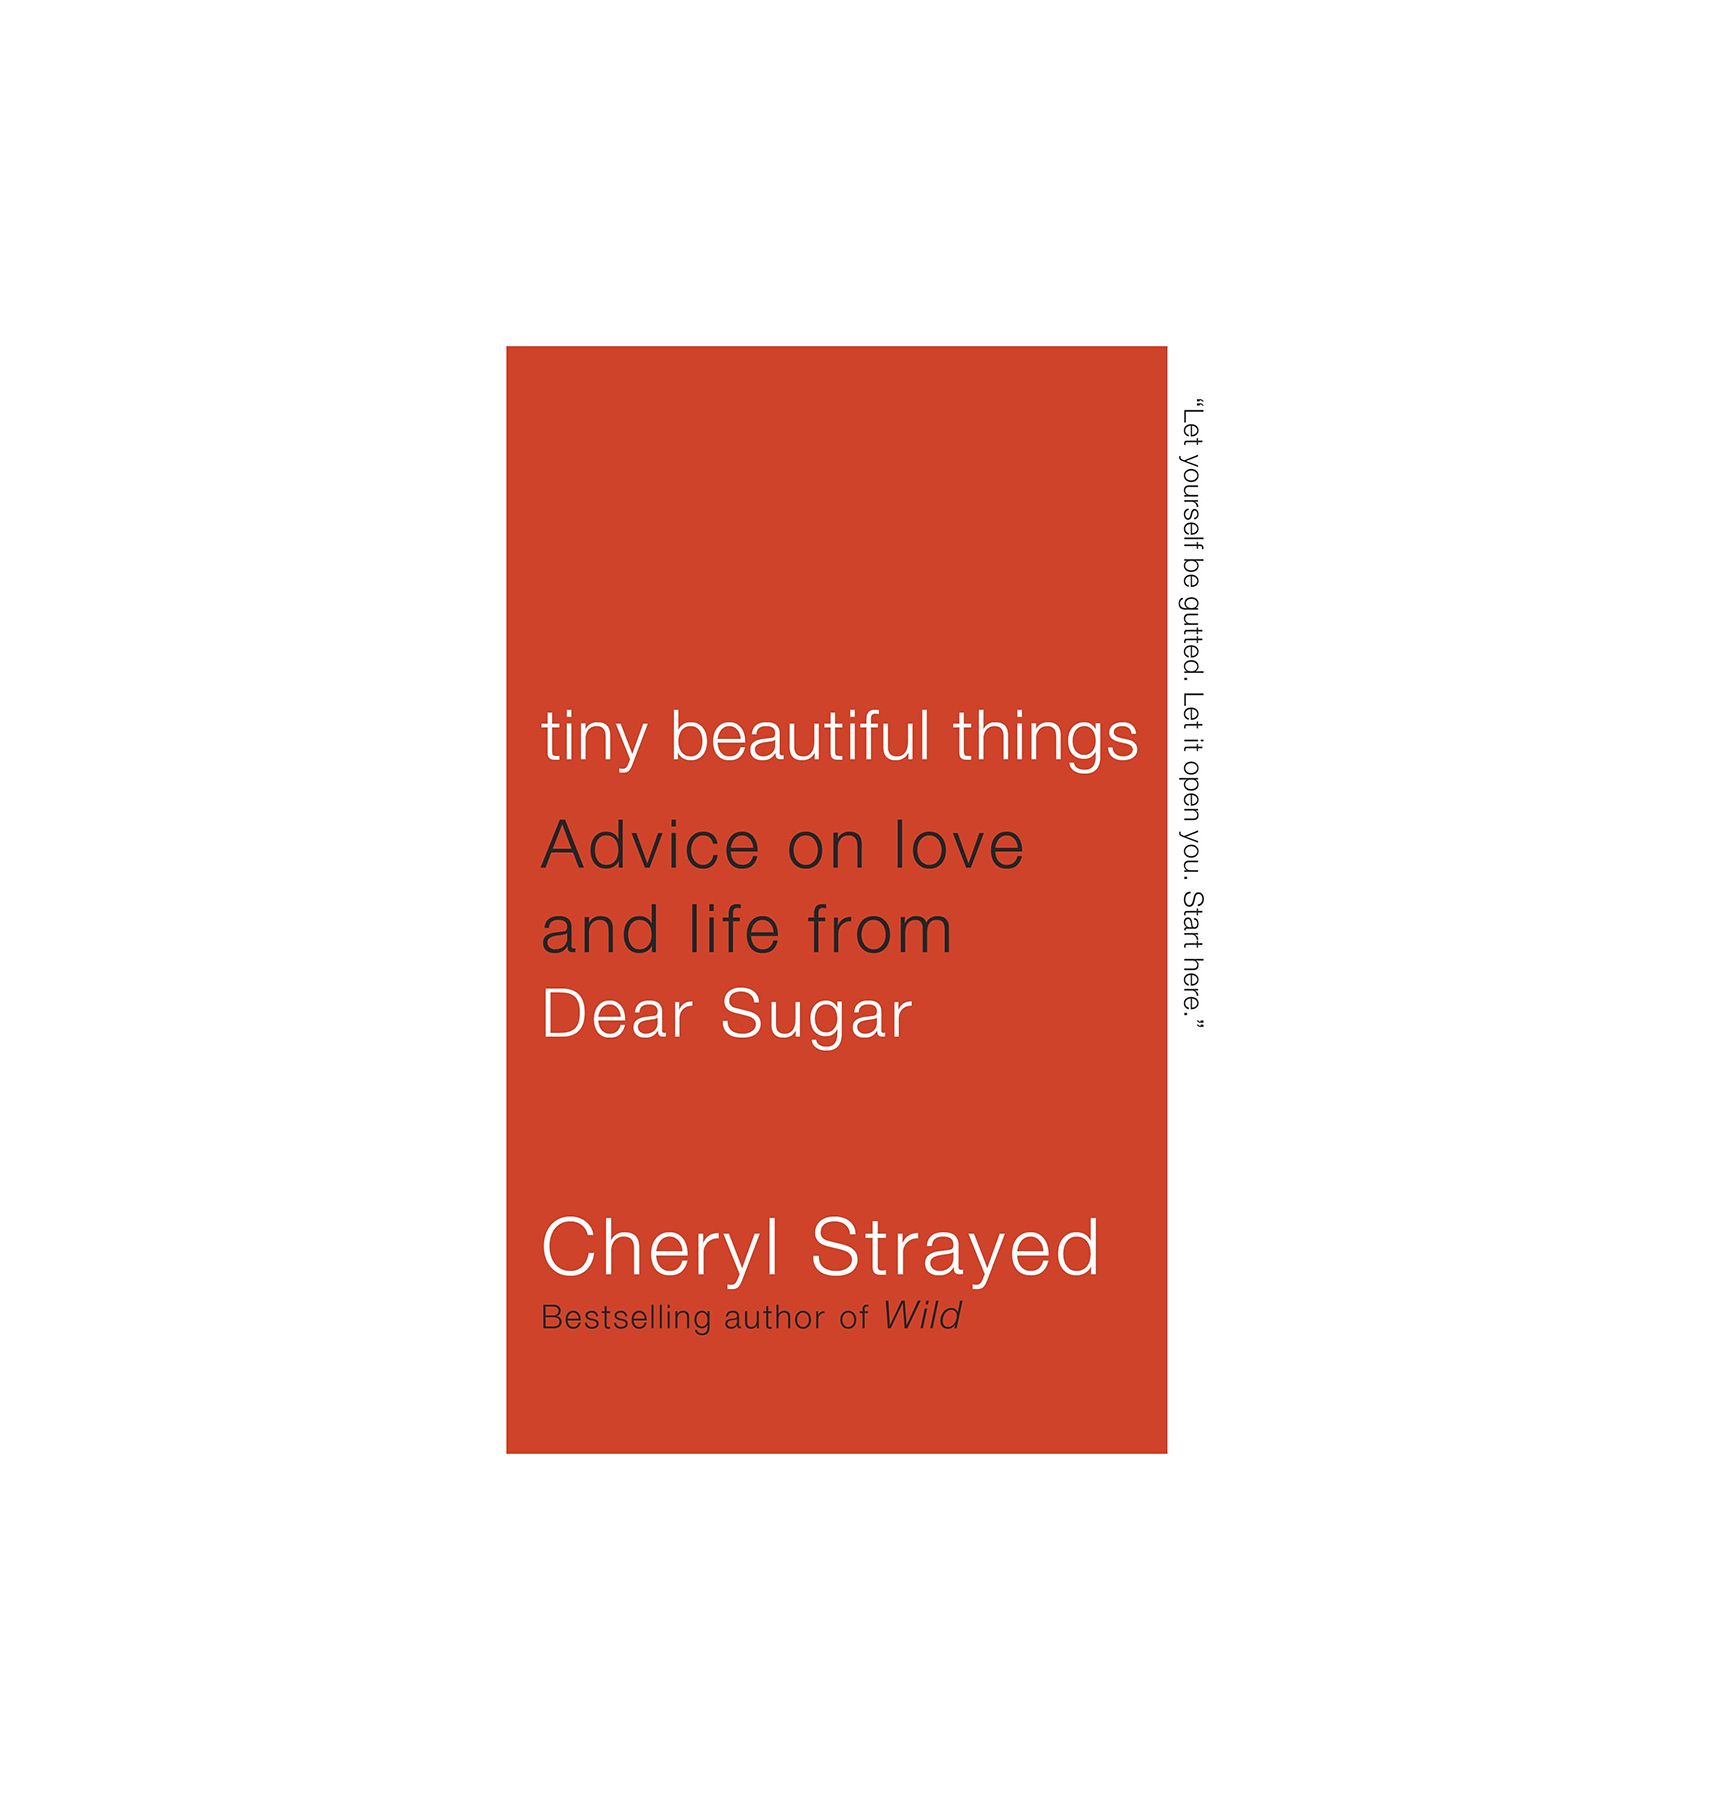 Tiny Beautiful Things: Advice on Love and Life From Dear Sugar, by Cheryl Strayed